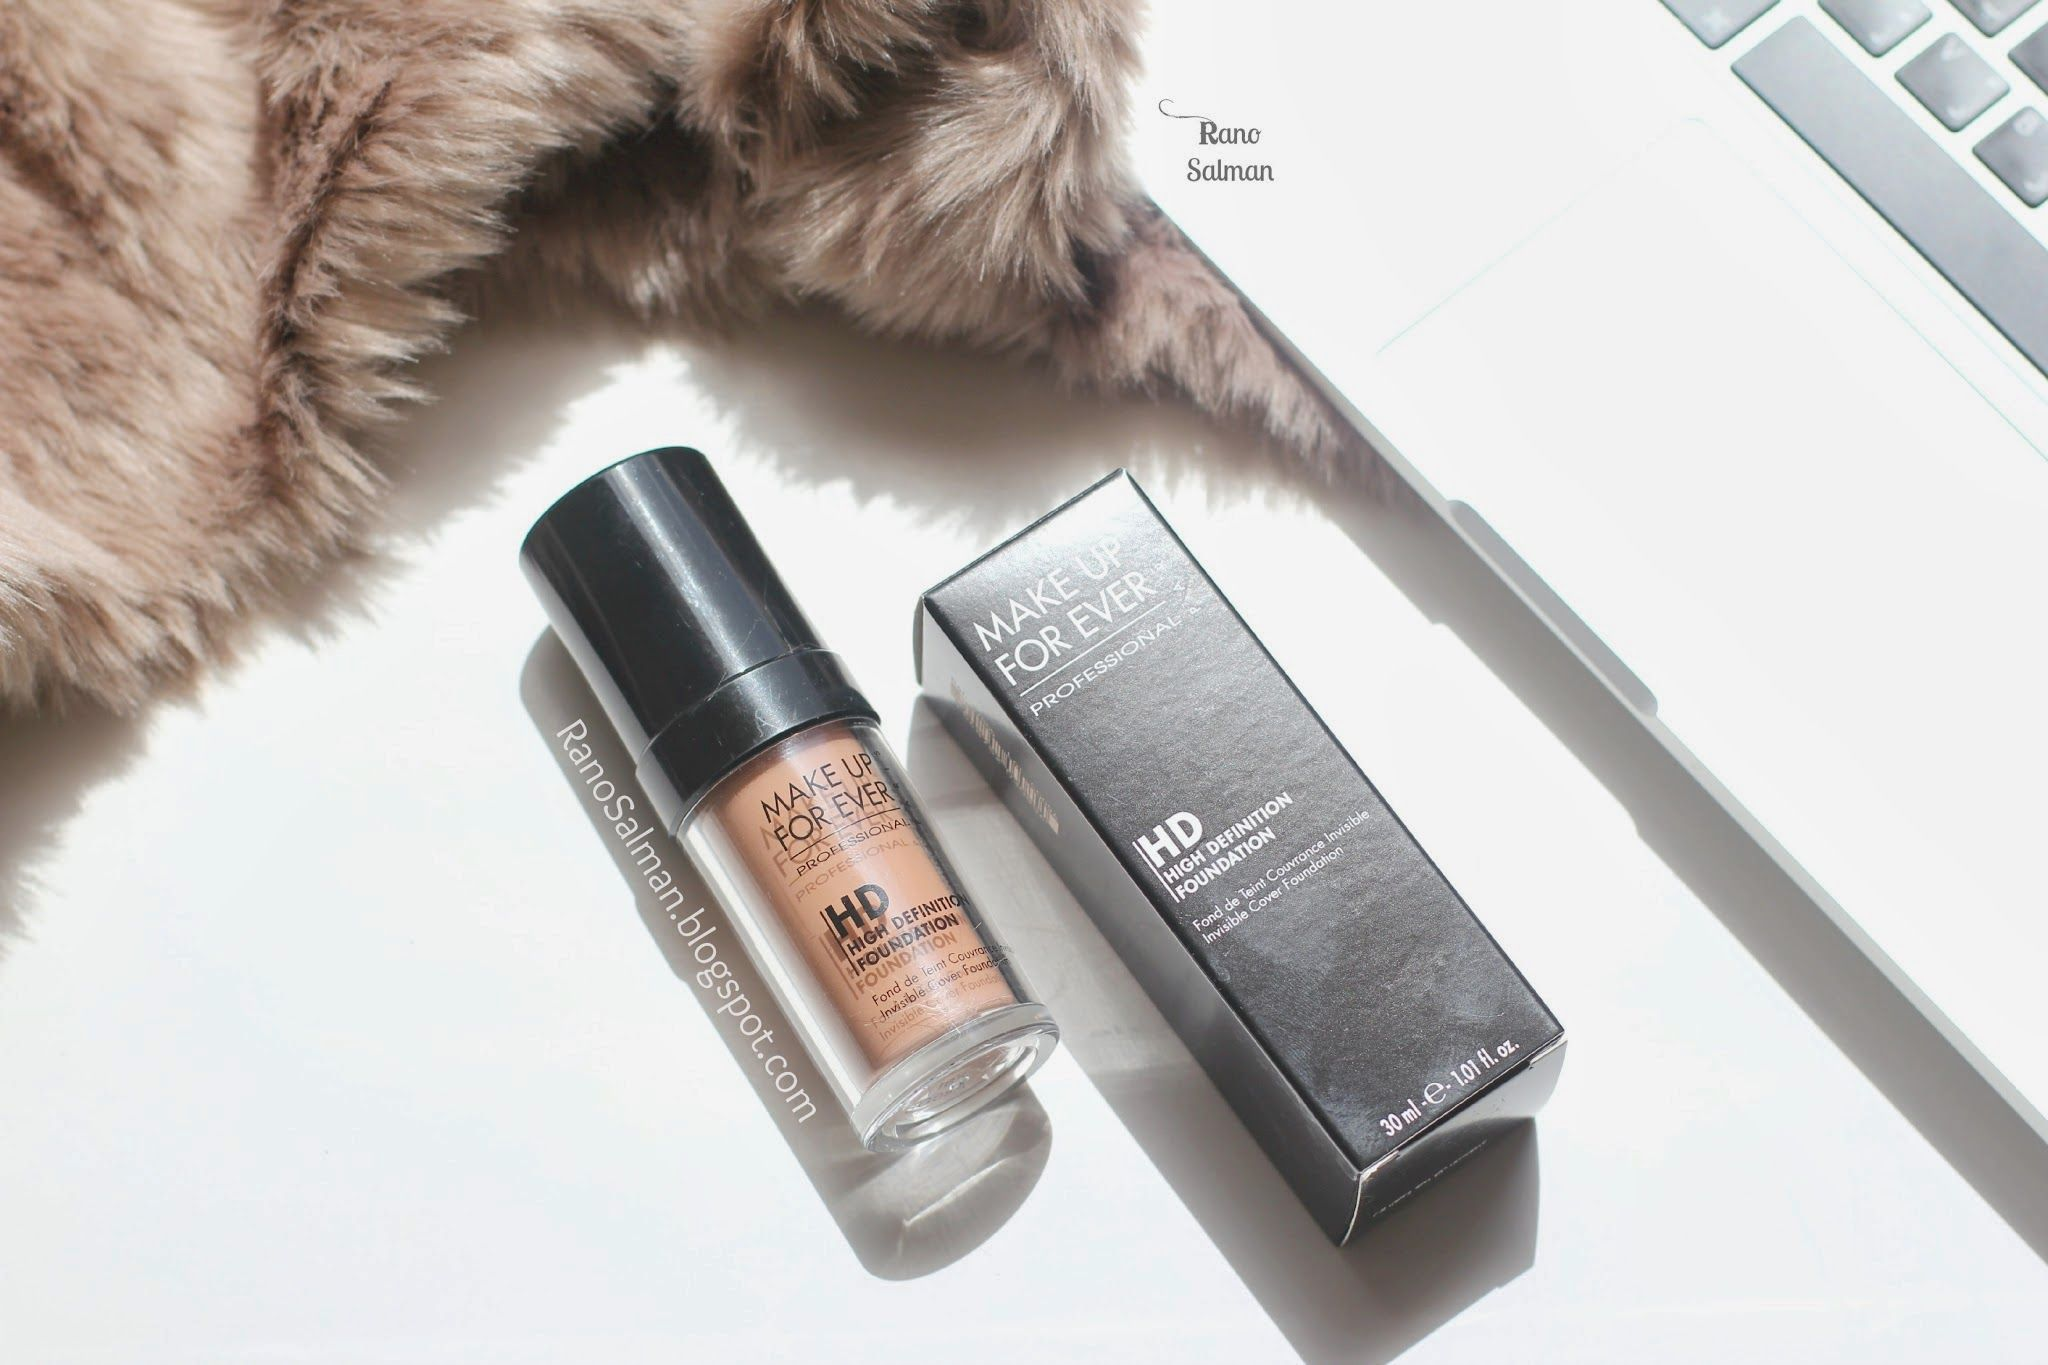 Review Makeup Forever Hd Foundation مراجعة فاونديشن ميك اب فور ايفر اتش دي Makeup Forever Hd Foundation Makeup Forever Hd Makeup Forever